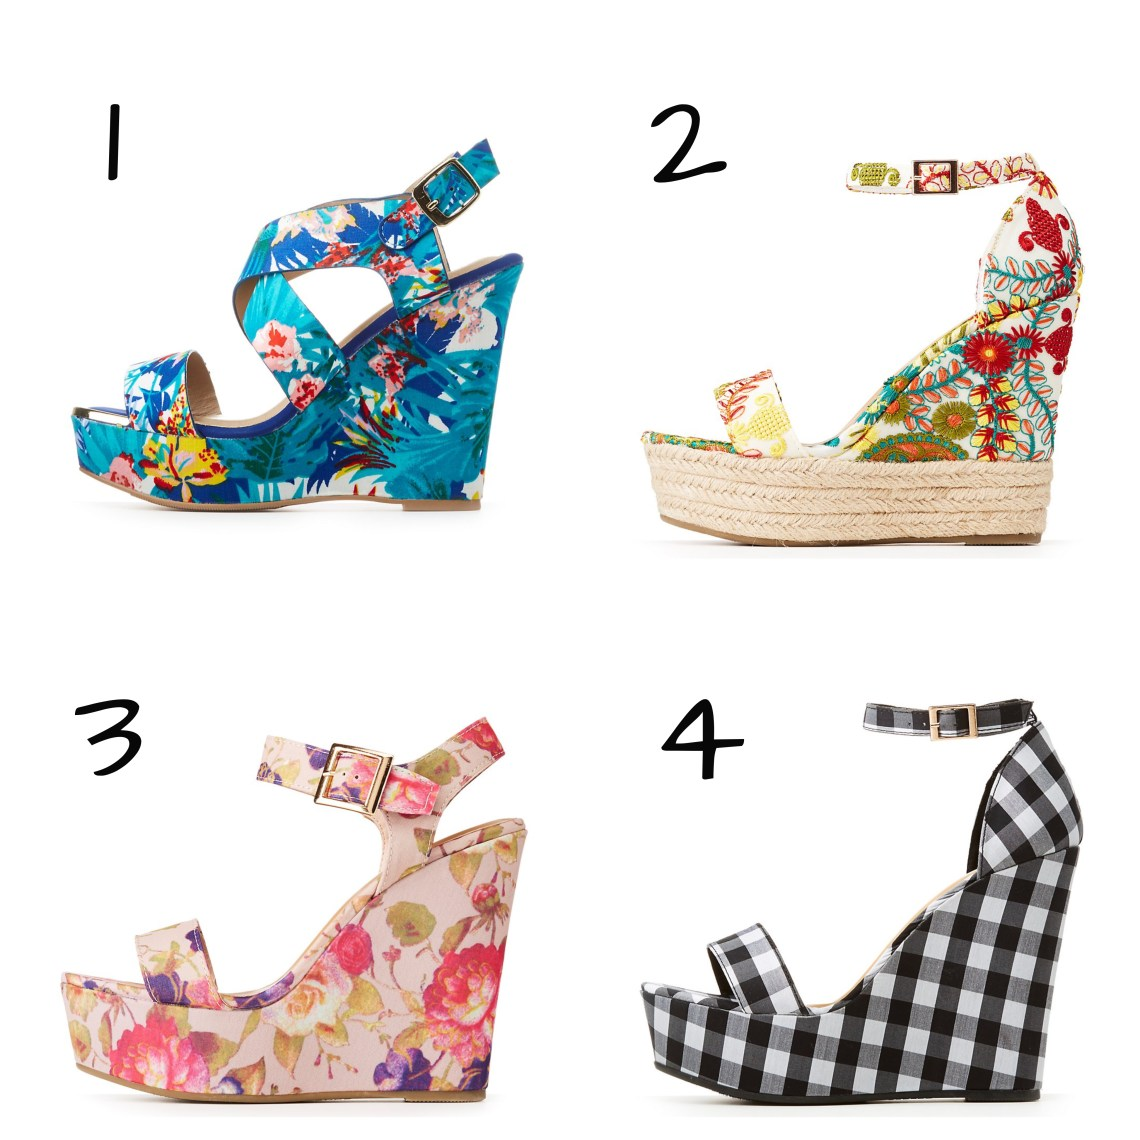 09c5e9a6e32b Bamboo Floral Espadrille Wedge Sandals. 3. Bamboo Floral Wedge Sandals. 4.  Bamboo Gingham Ankle Strap Wedge Sandals.